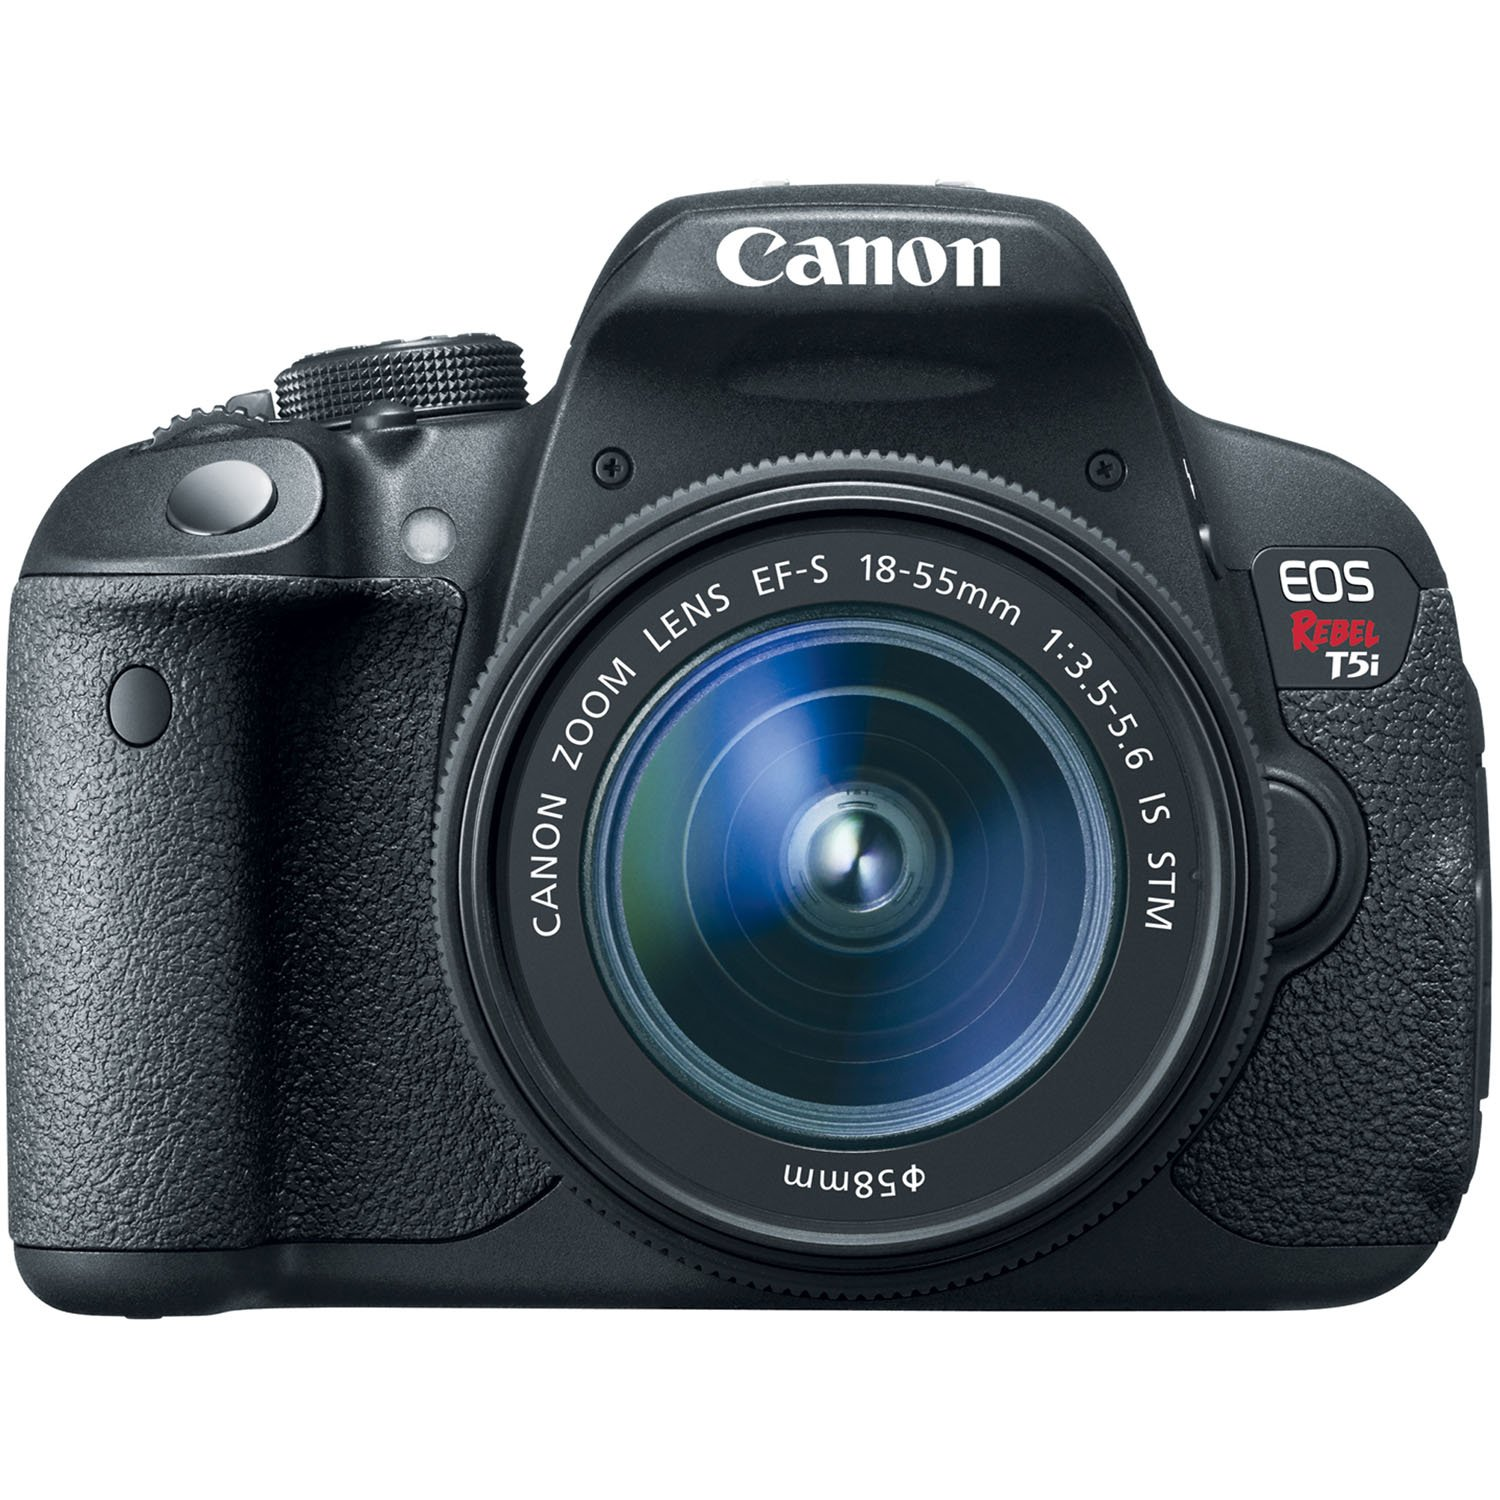 Camera Recommended Dslr Camera For Beginners best dslr camera for beginners 2017 runner reviews 1 canon eos rebel t5